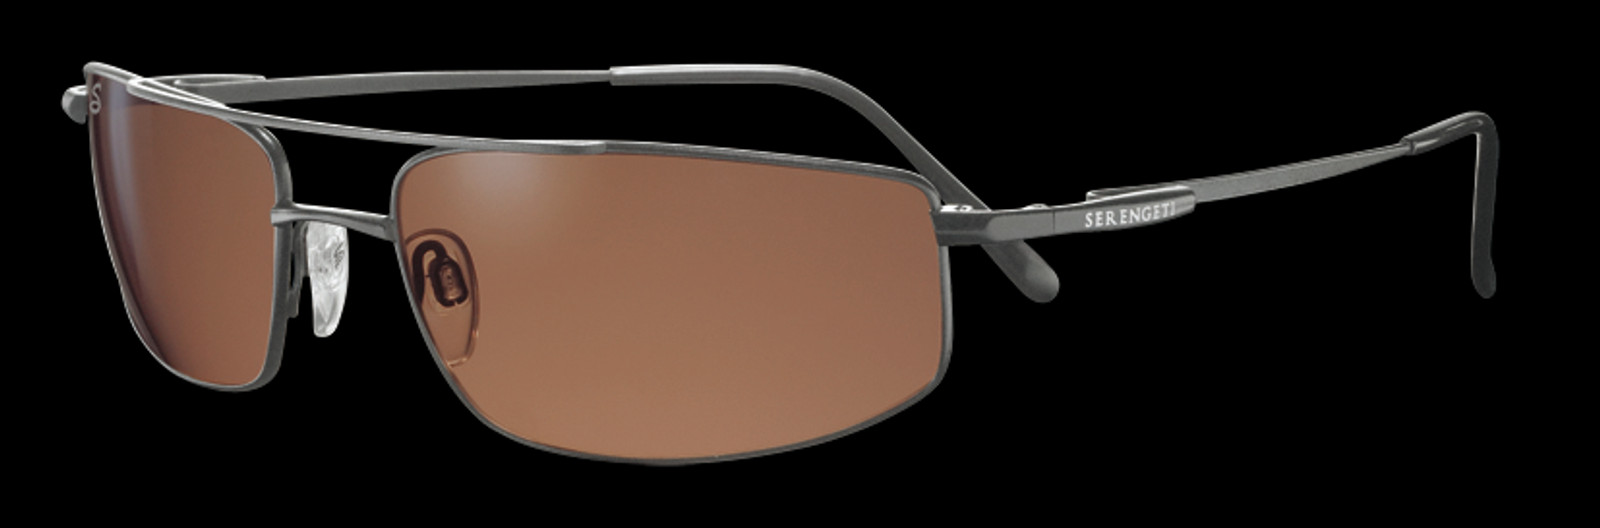 Serengeti Sunglasses